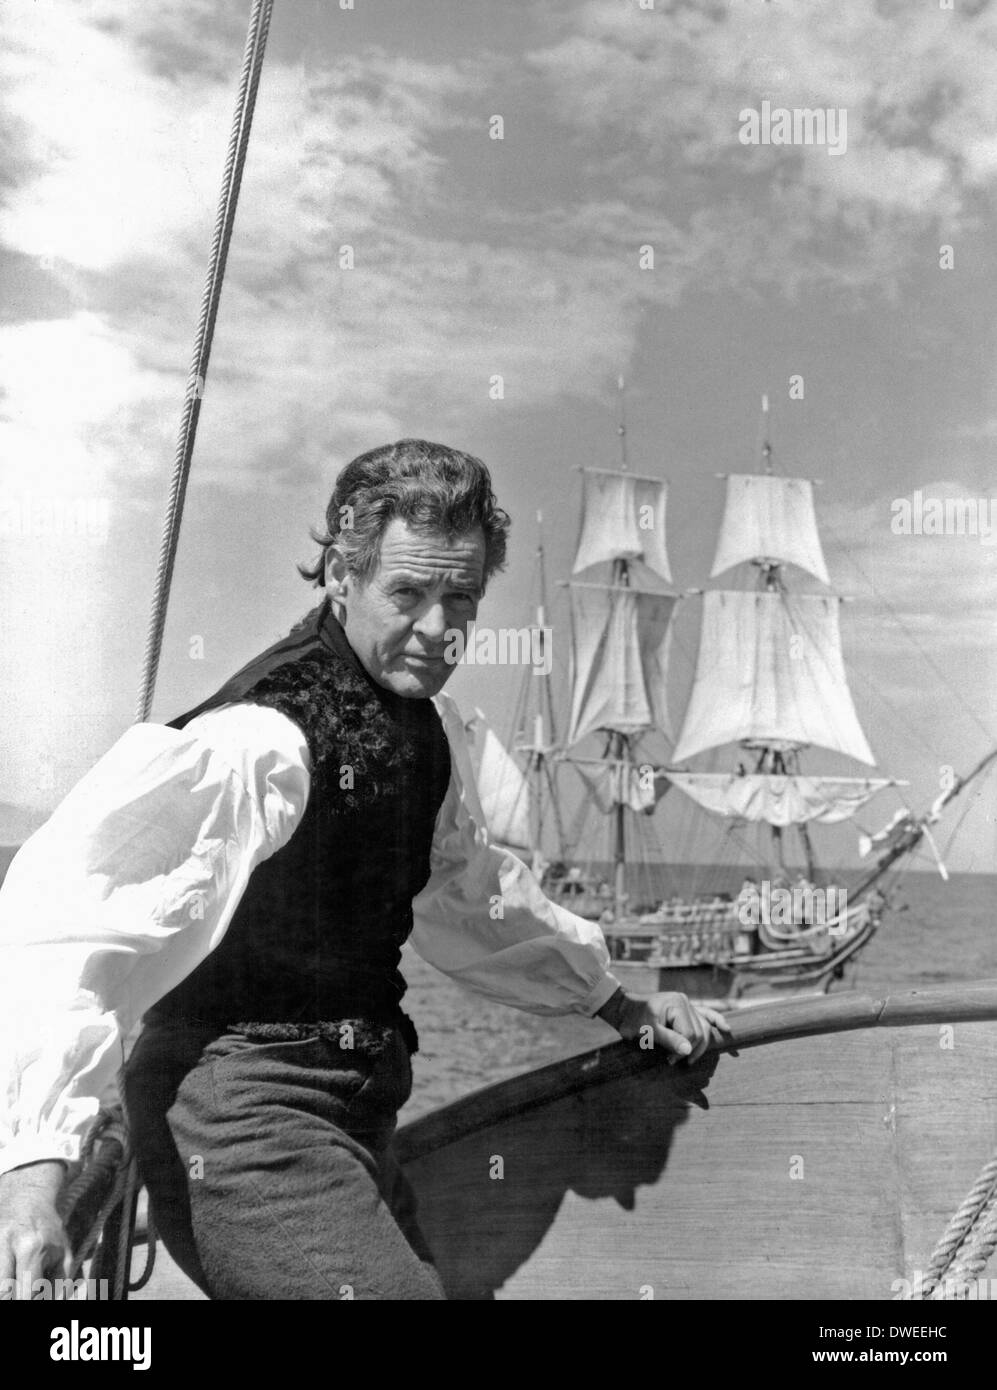 Robert Ryan, on-set of the Film, 'Billy Budd' directed by Peter Ustinov, 1962 - Stock Image